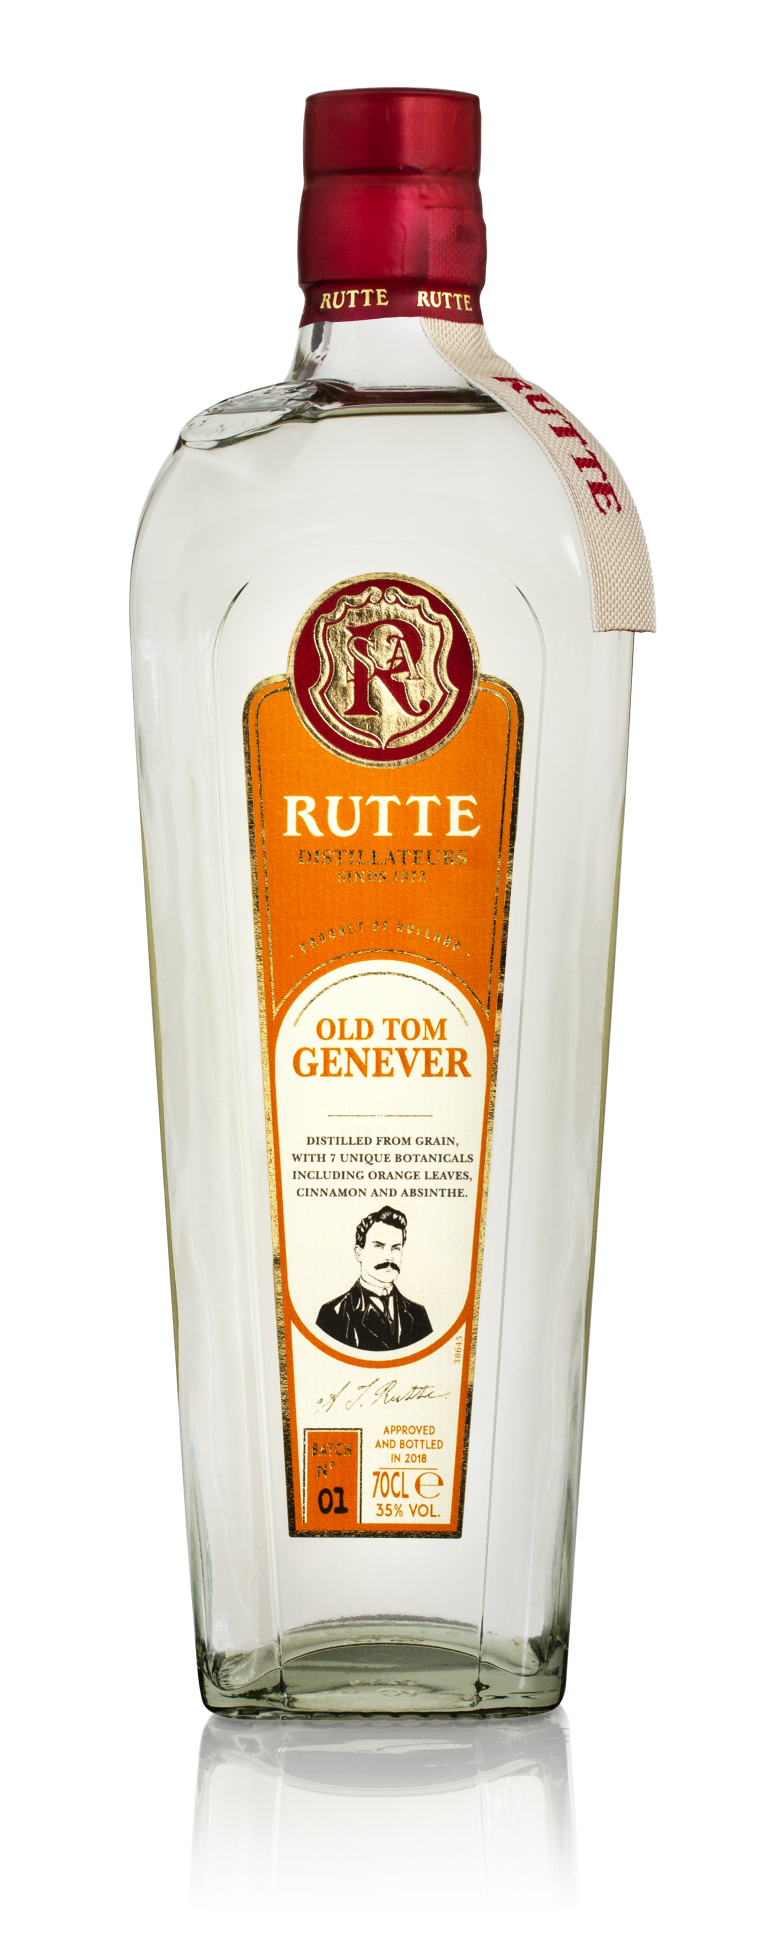 Old Tom Genever Rutte